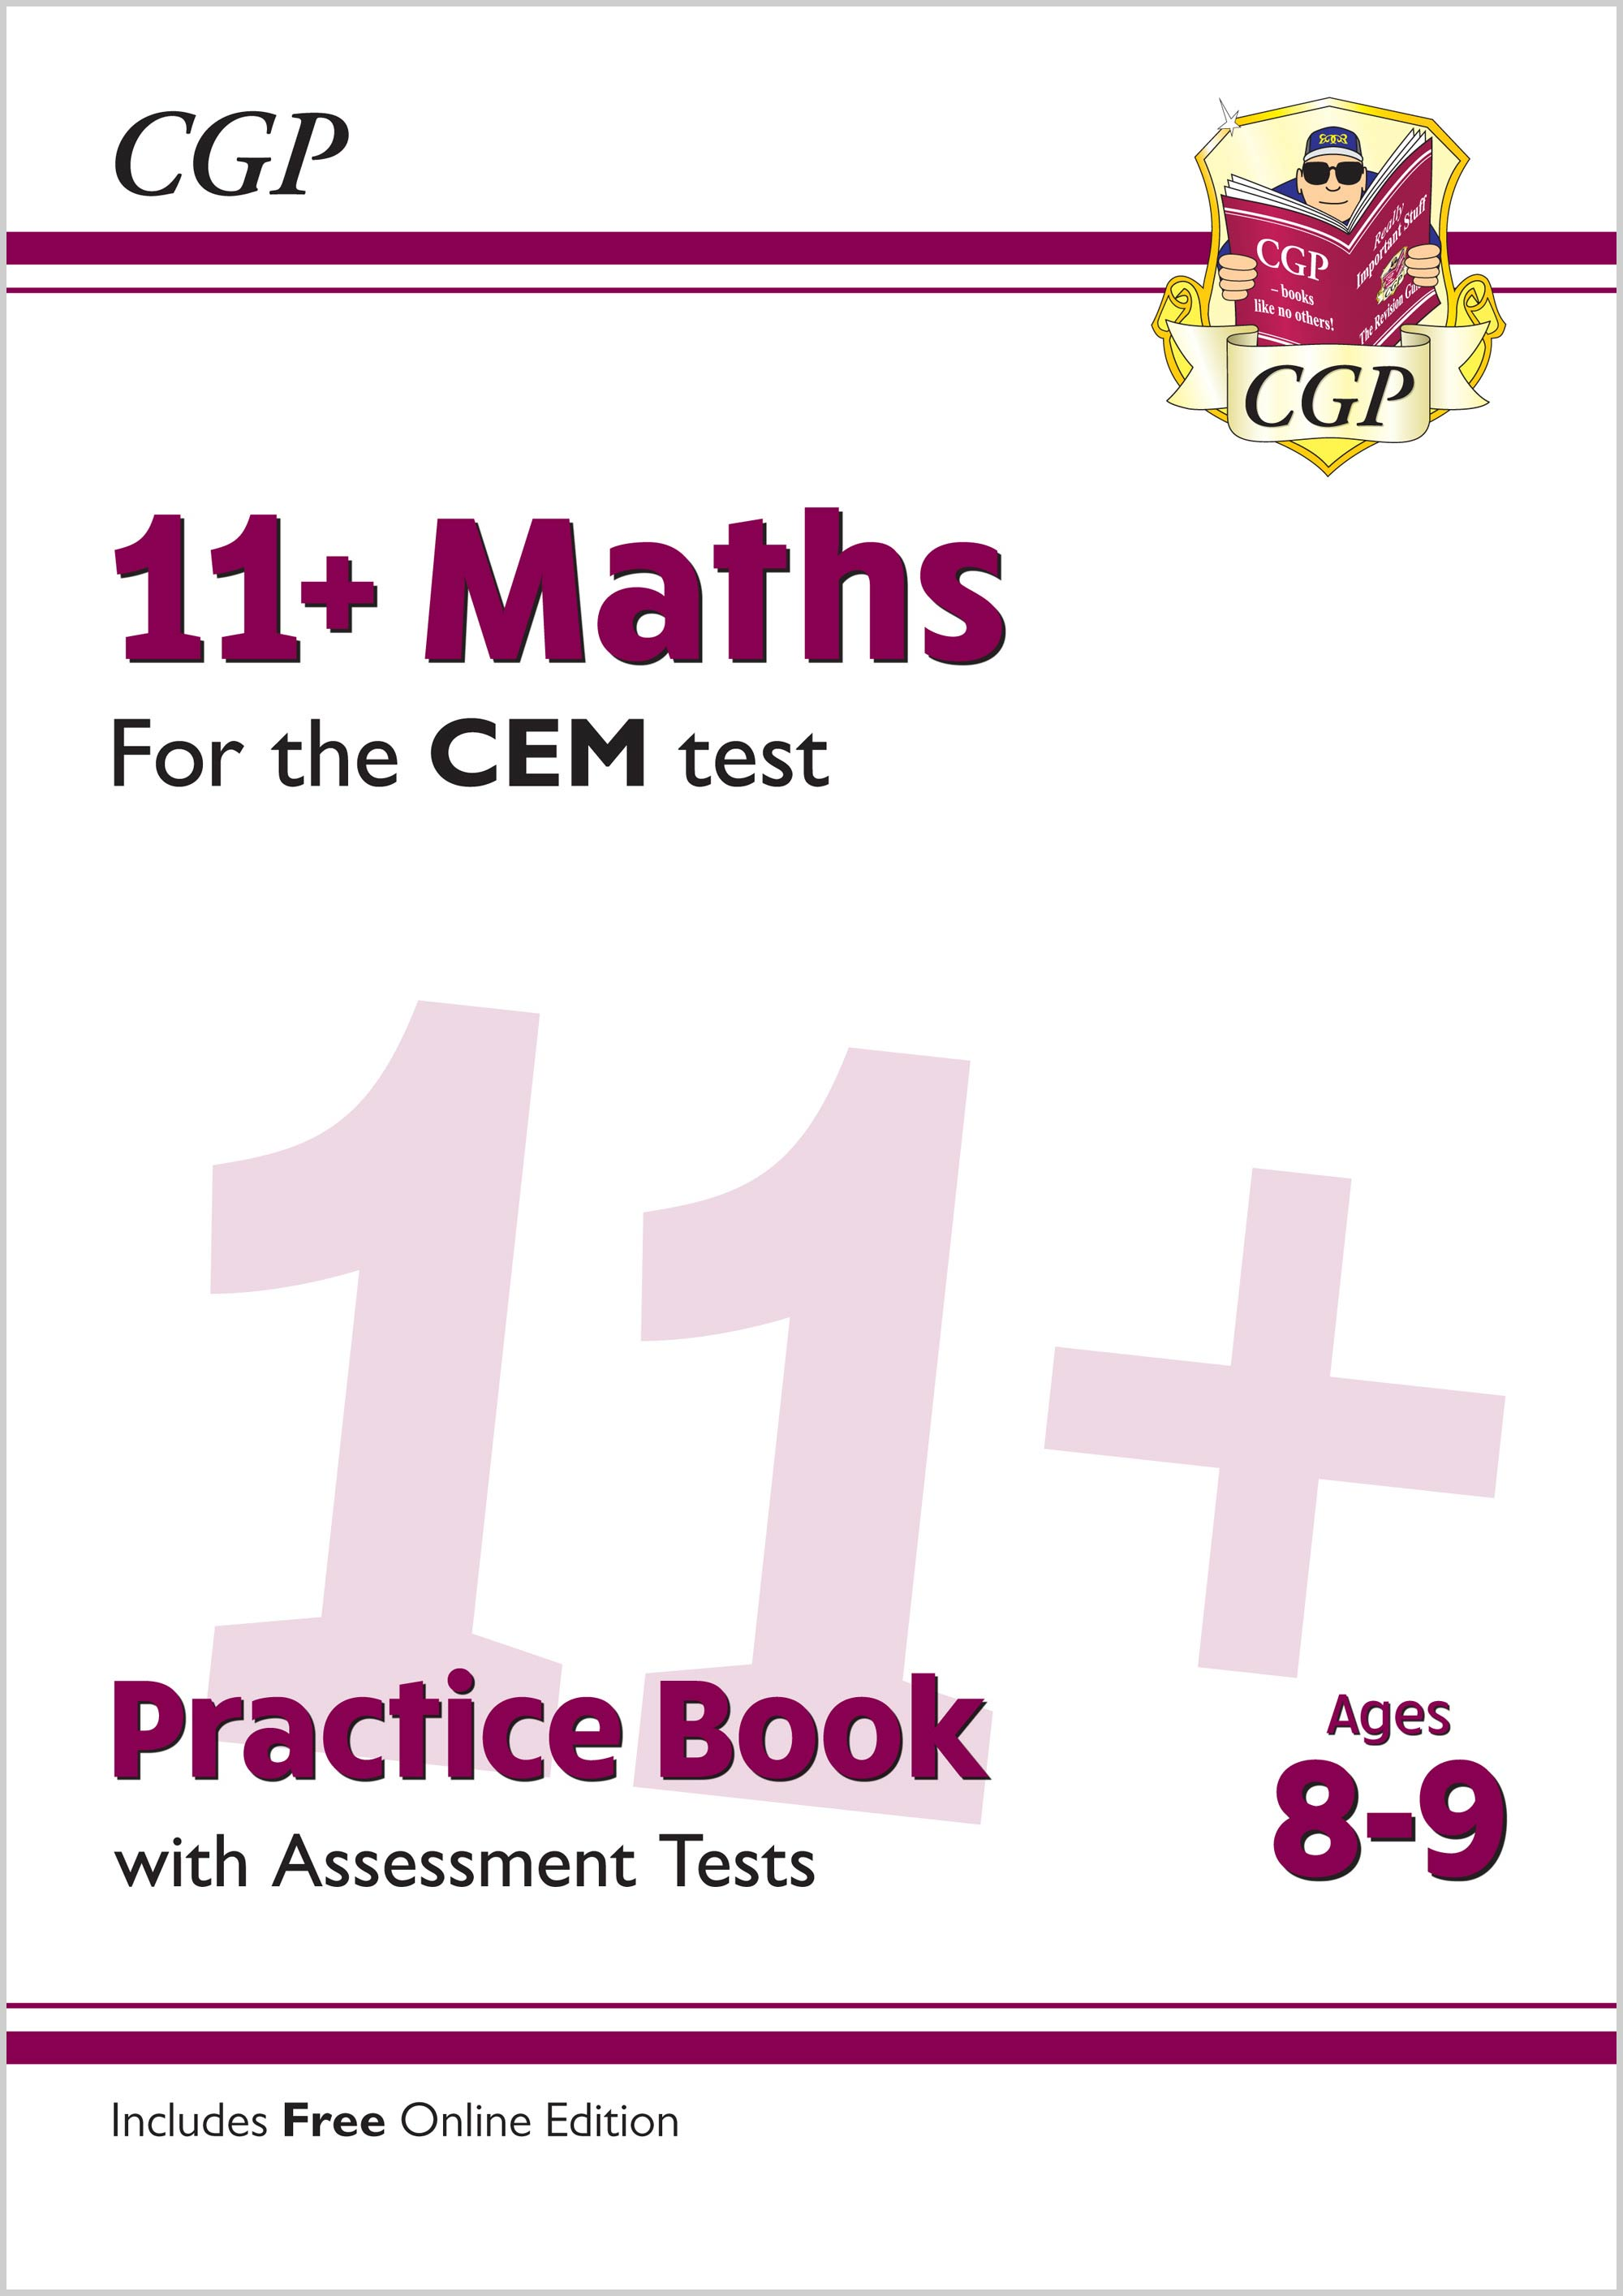 M4QDE2 - 11+ CEM Maths Practice Book & Assessment Tests - Ages 8-9 (with Online Edition)